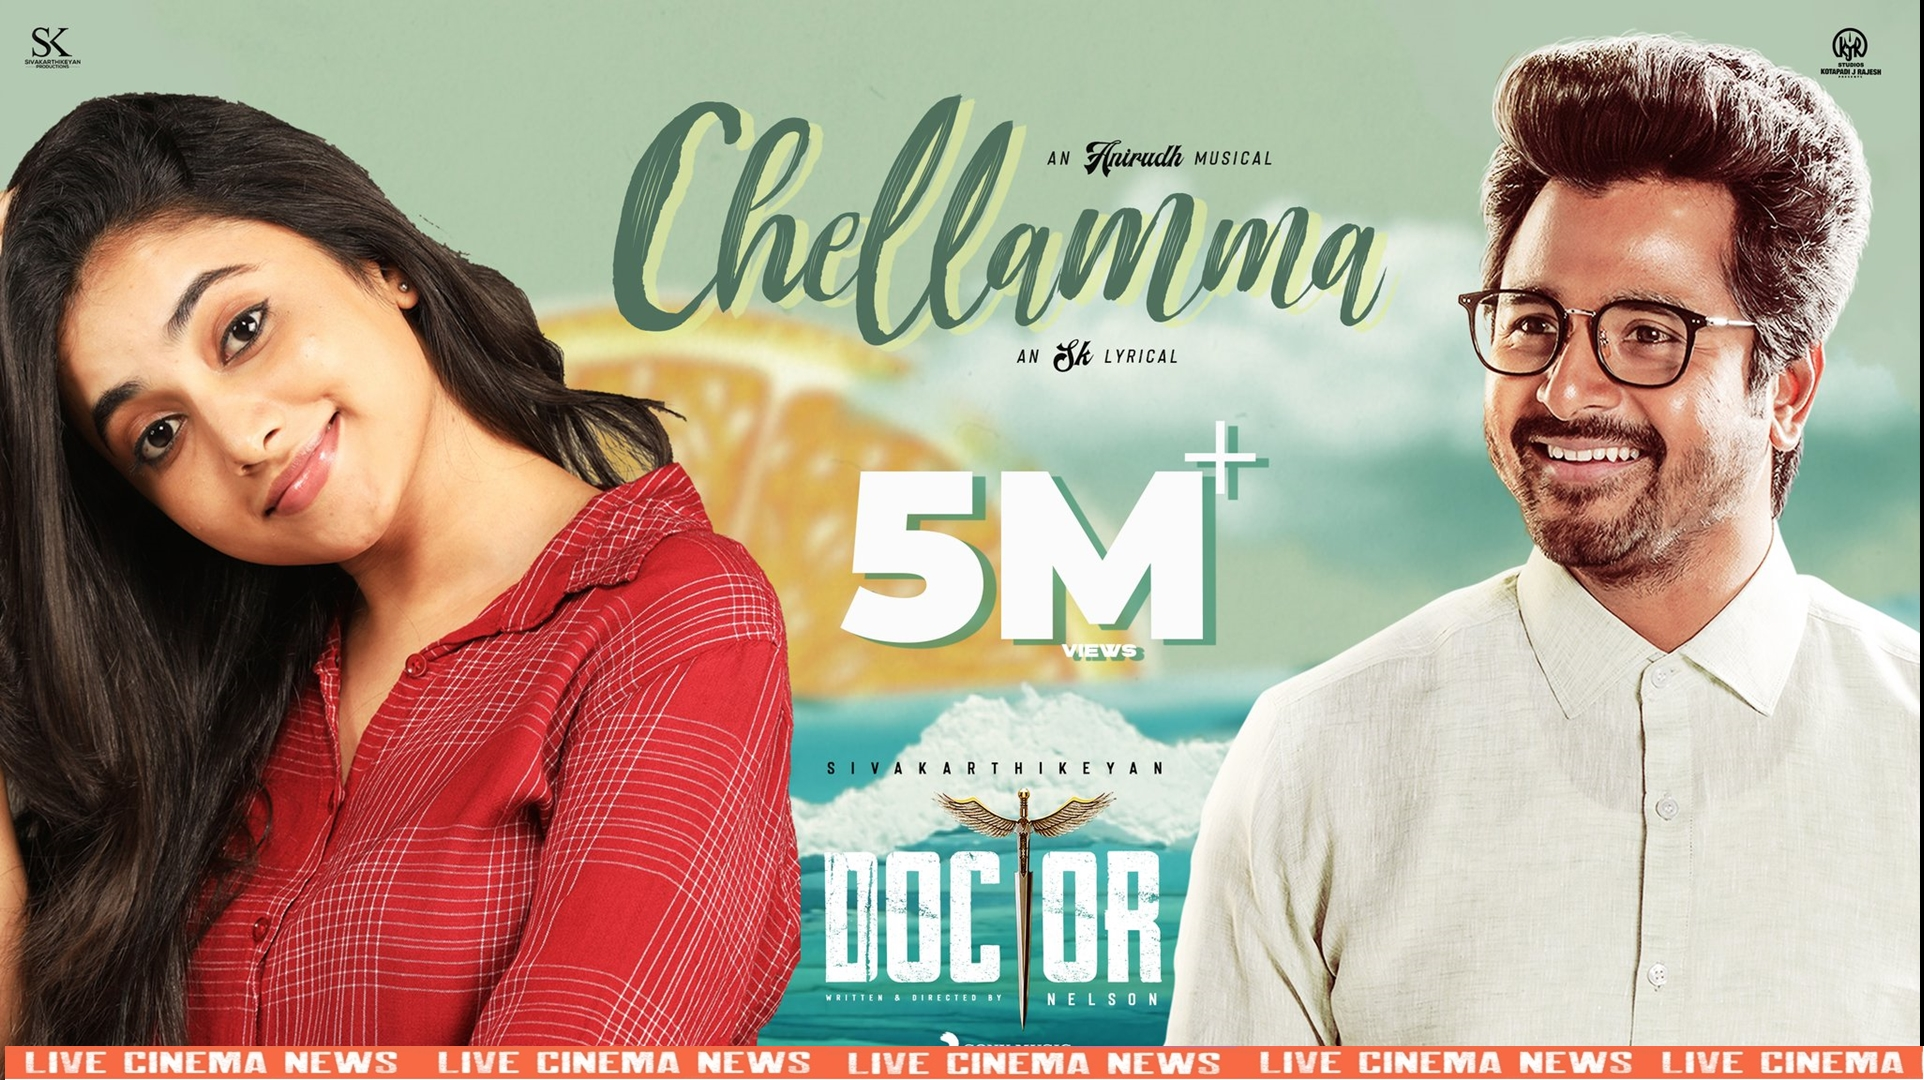 Chellamma song past 5 million viewers in youtube